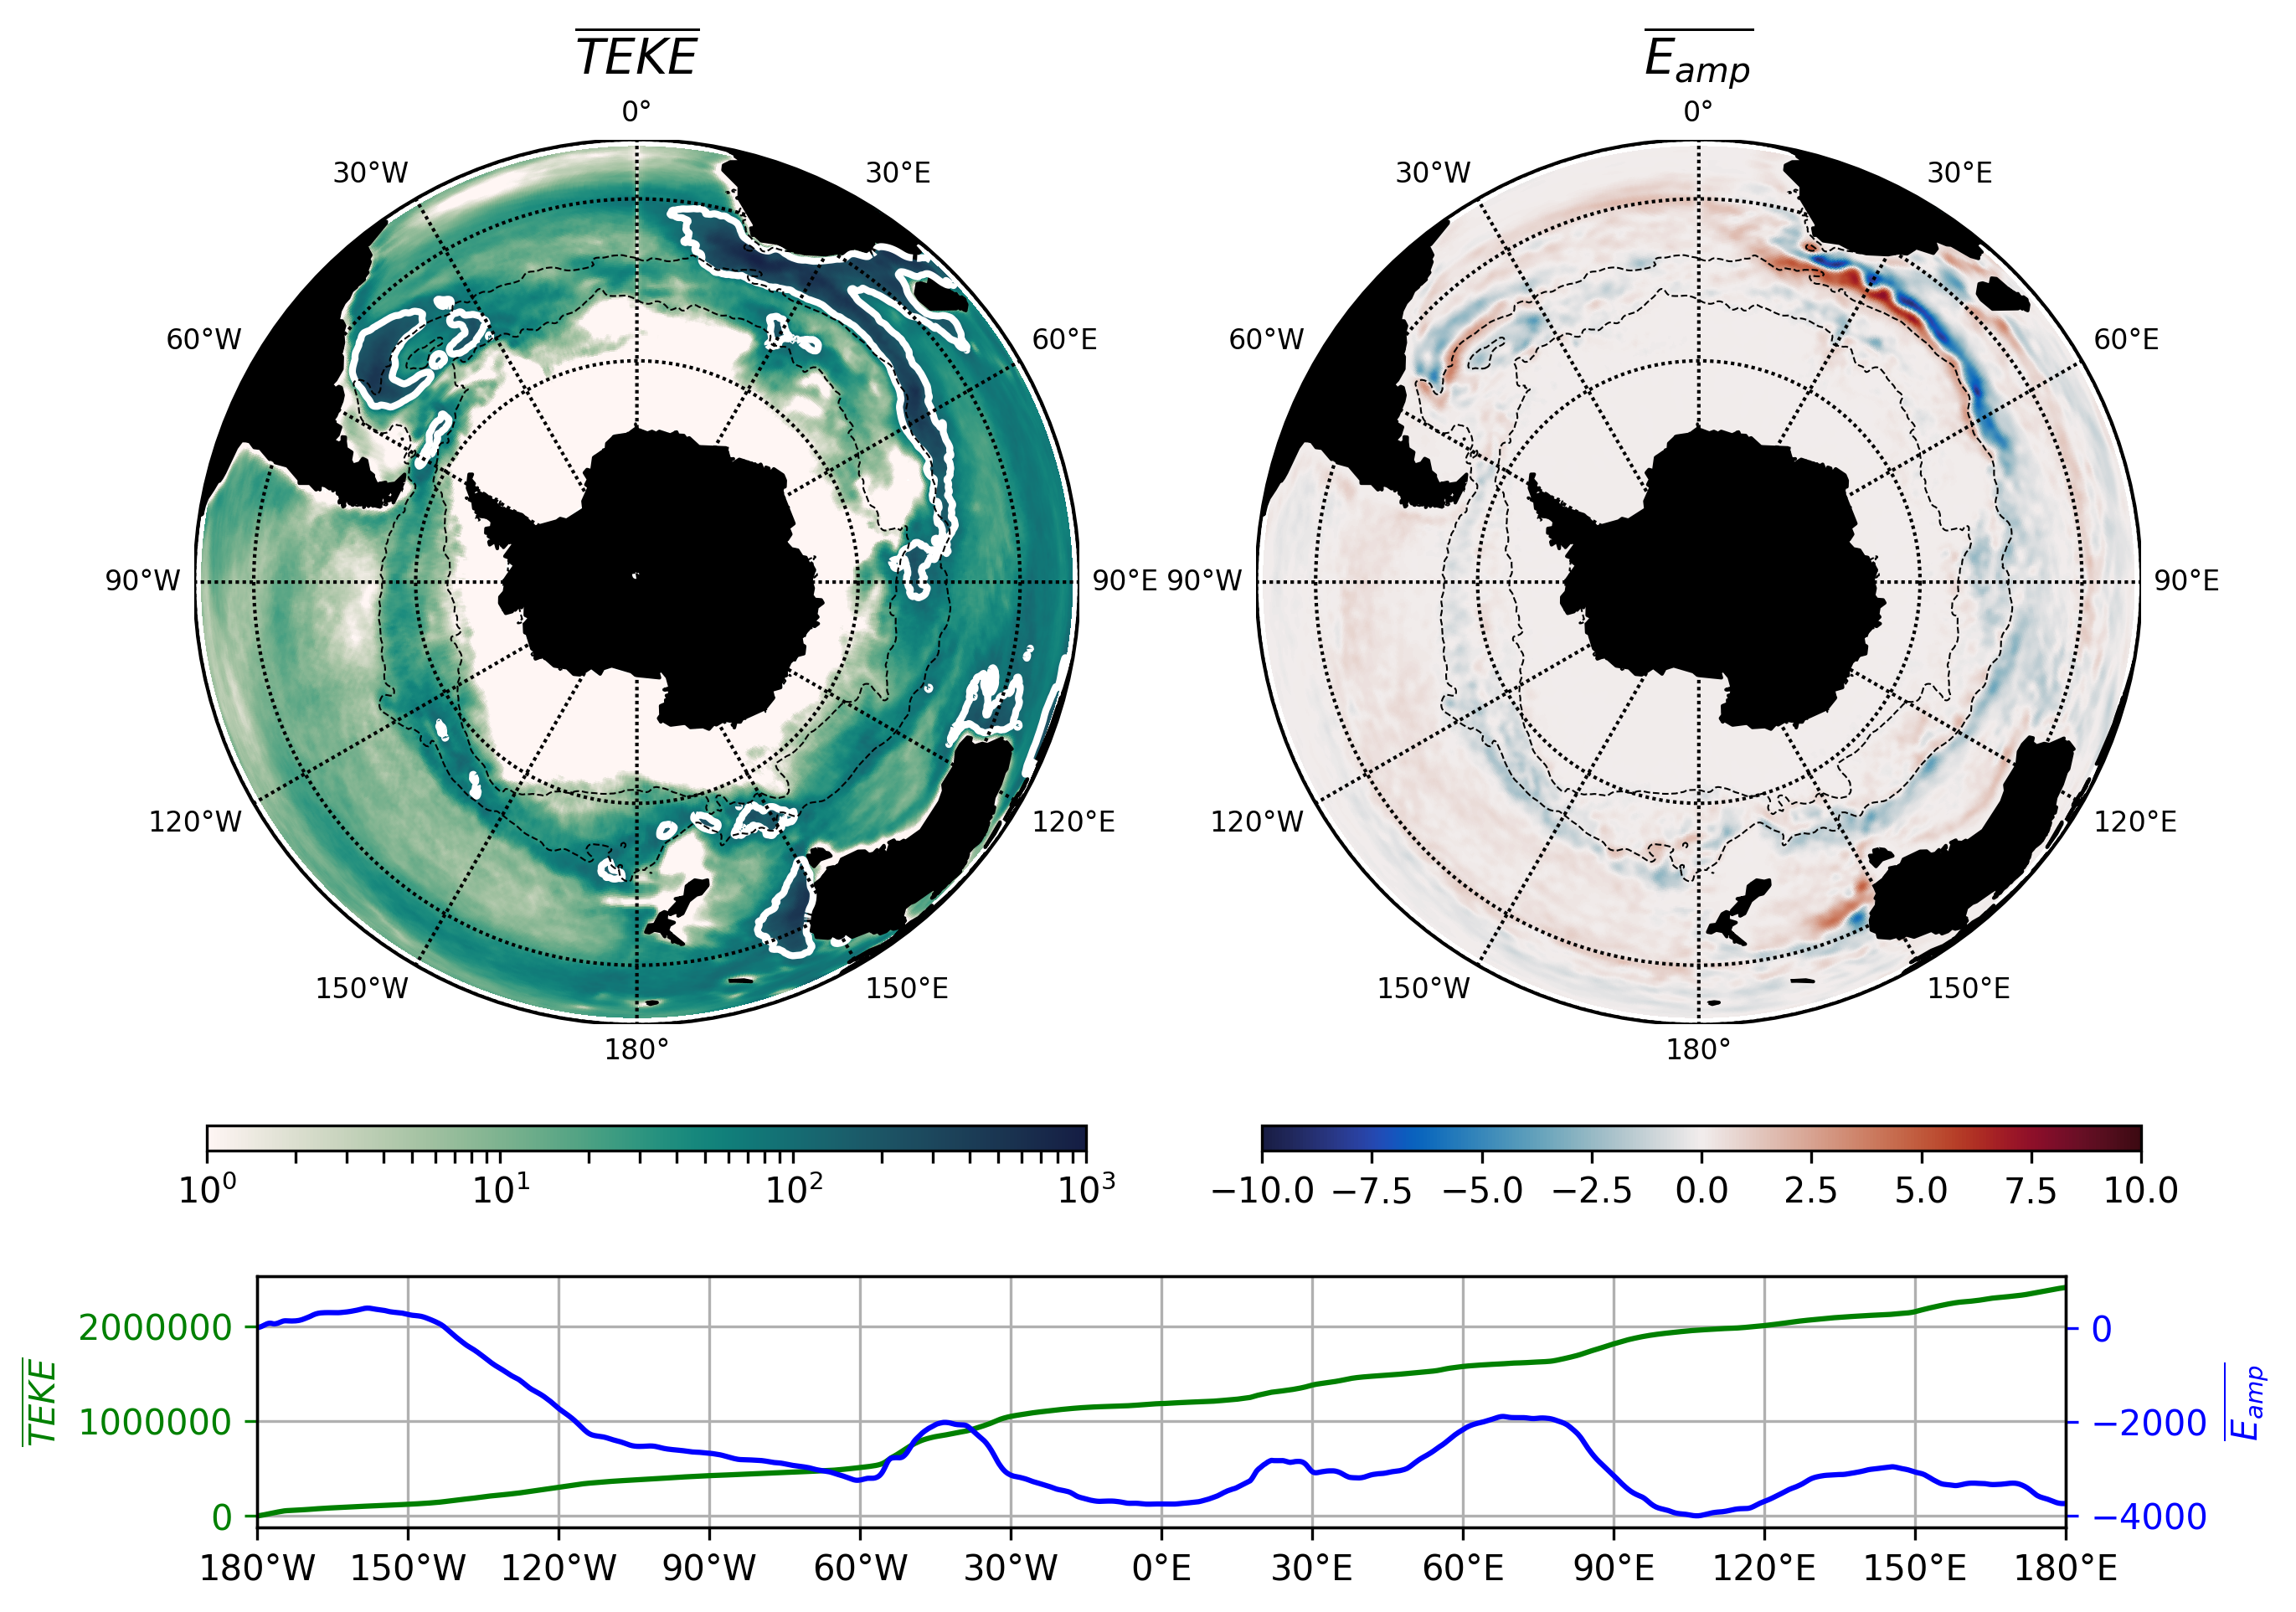 Hotspot distribution at the Southern Ocean